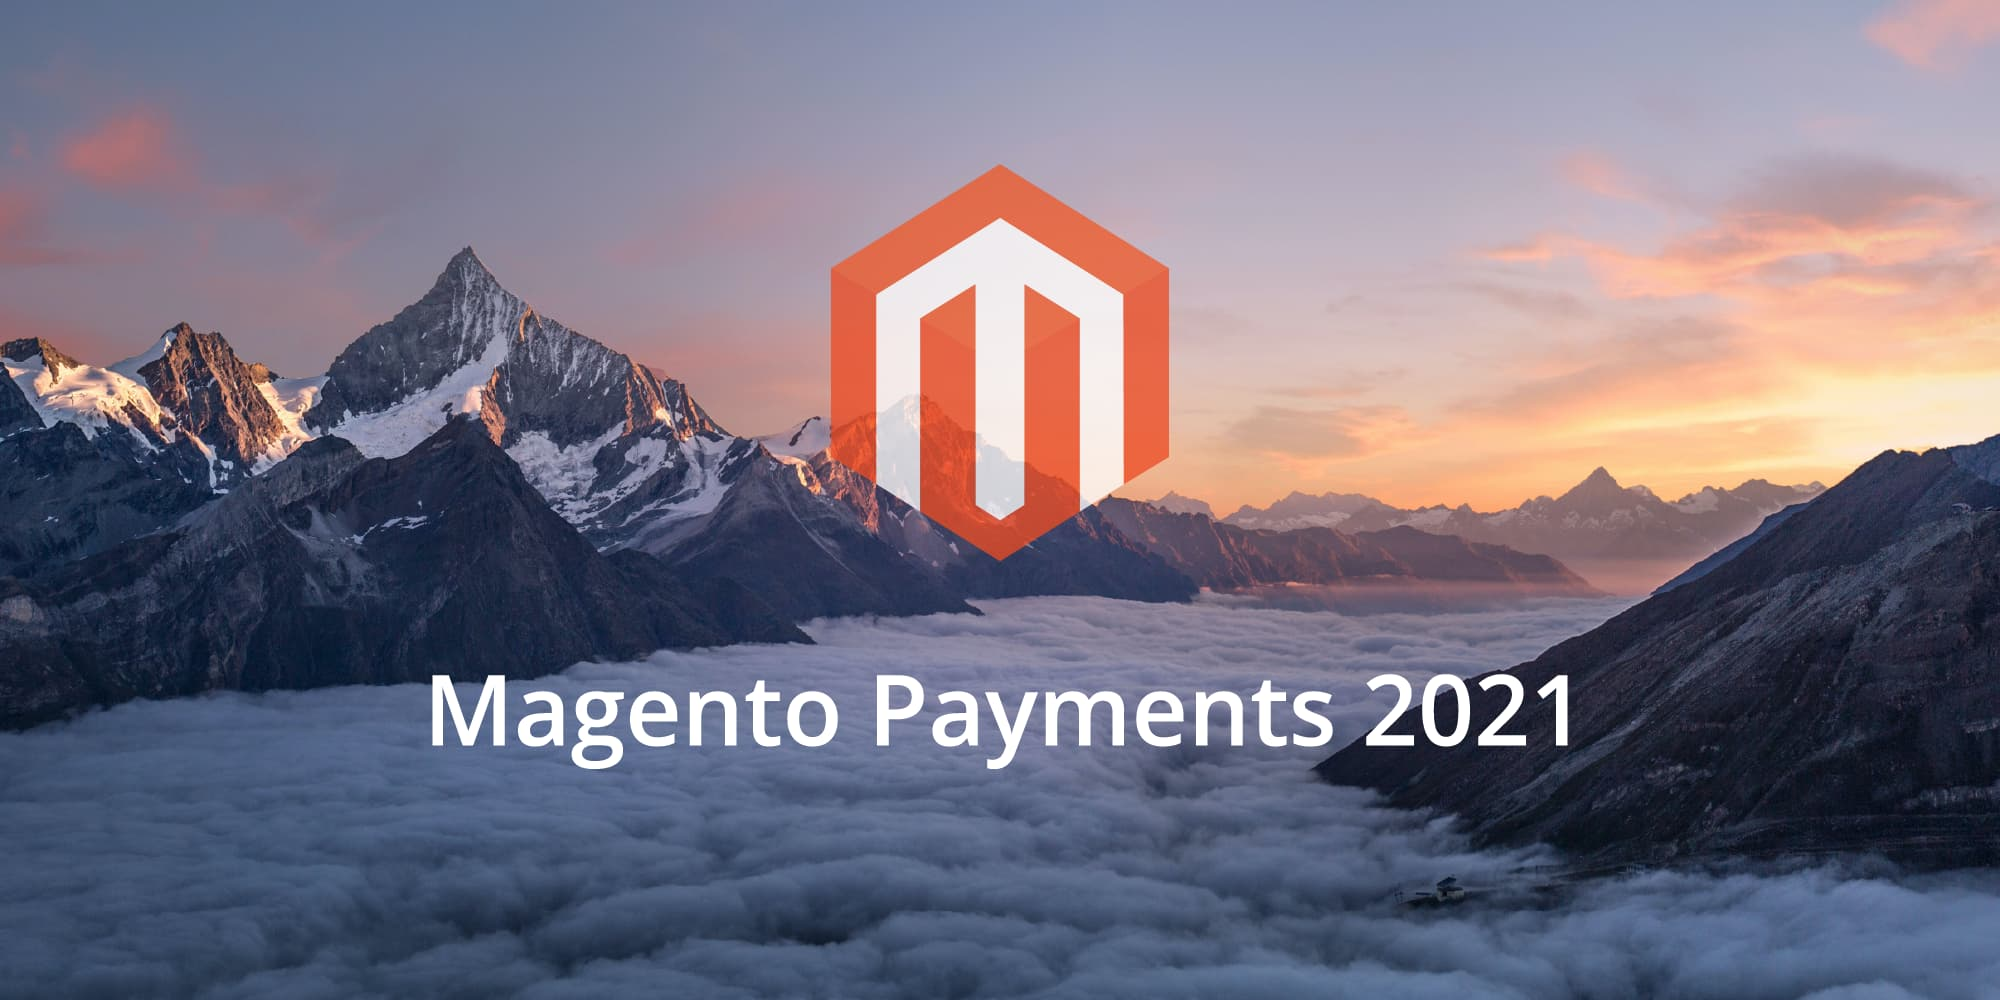 Magento Payments 2021